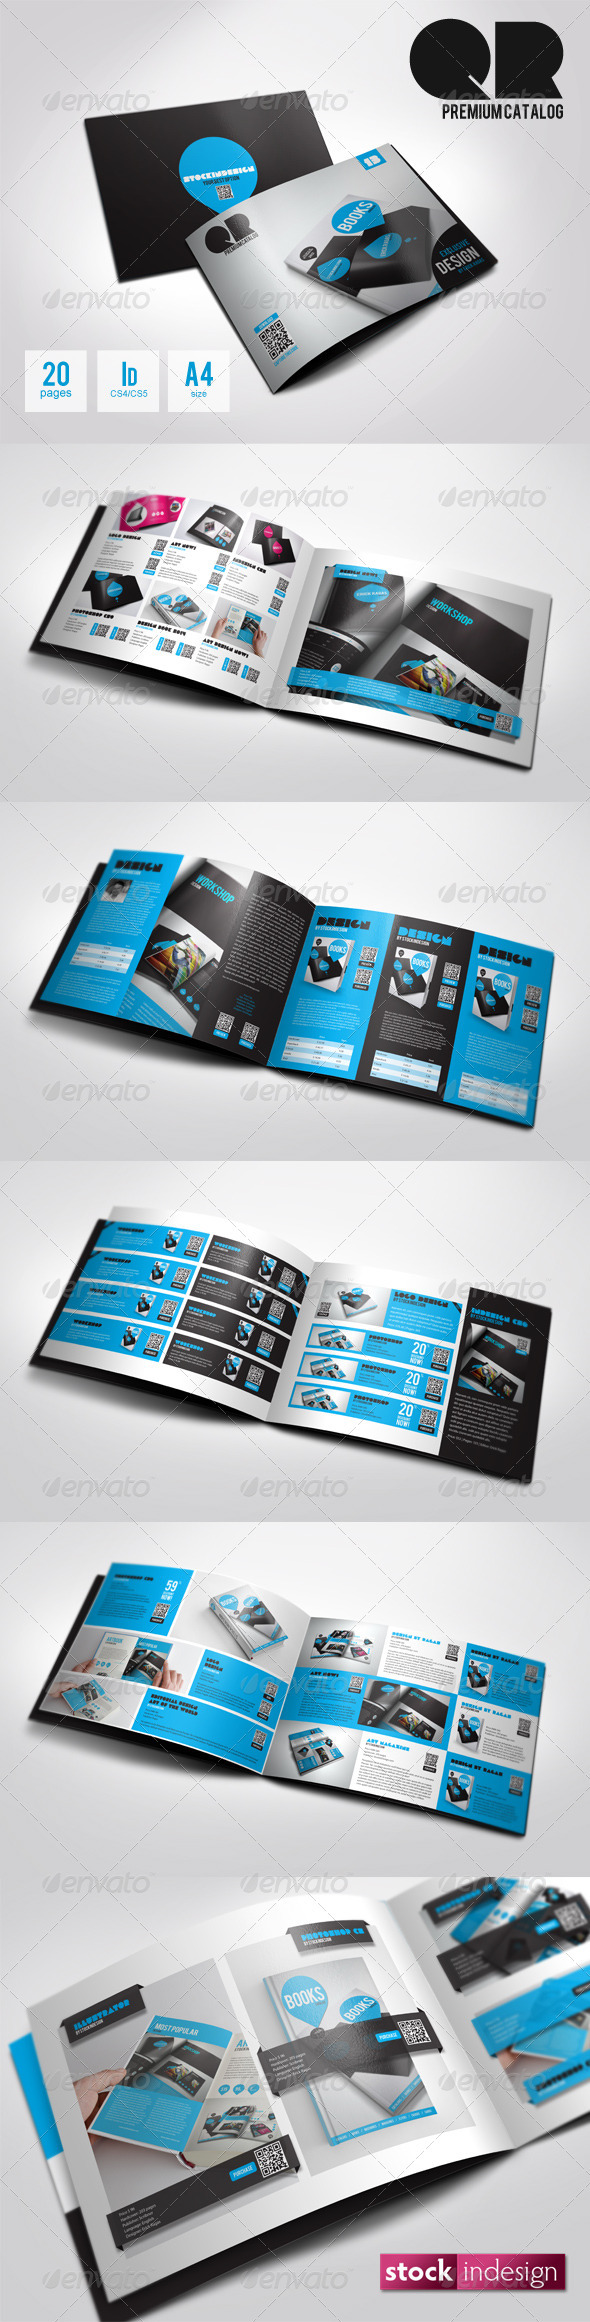 Graphic River QR Flexible Product Catalog Premium v2 Print Templates -  Brochures  Catalogs 1791356